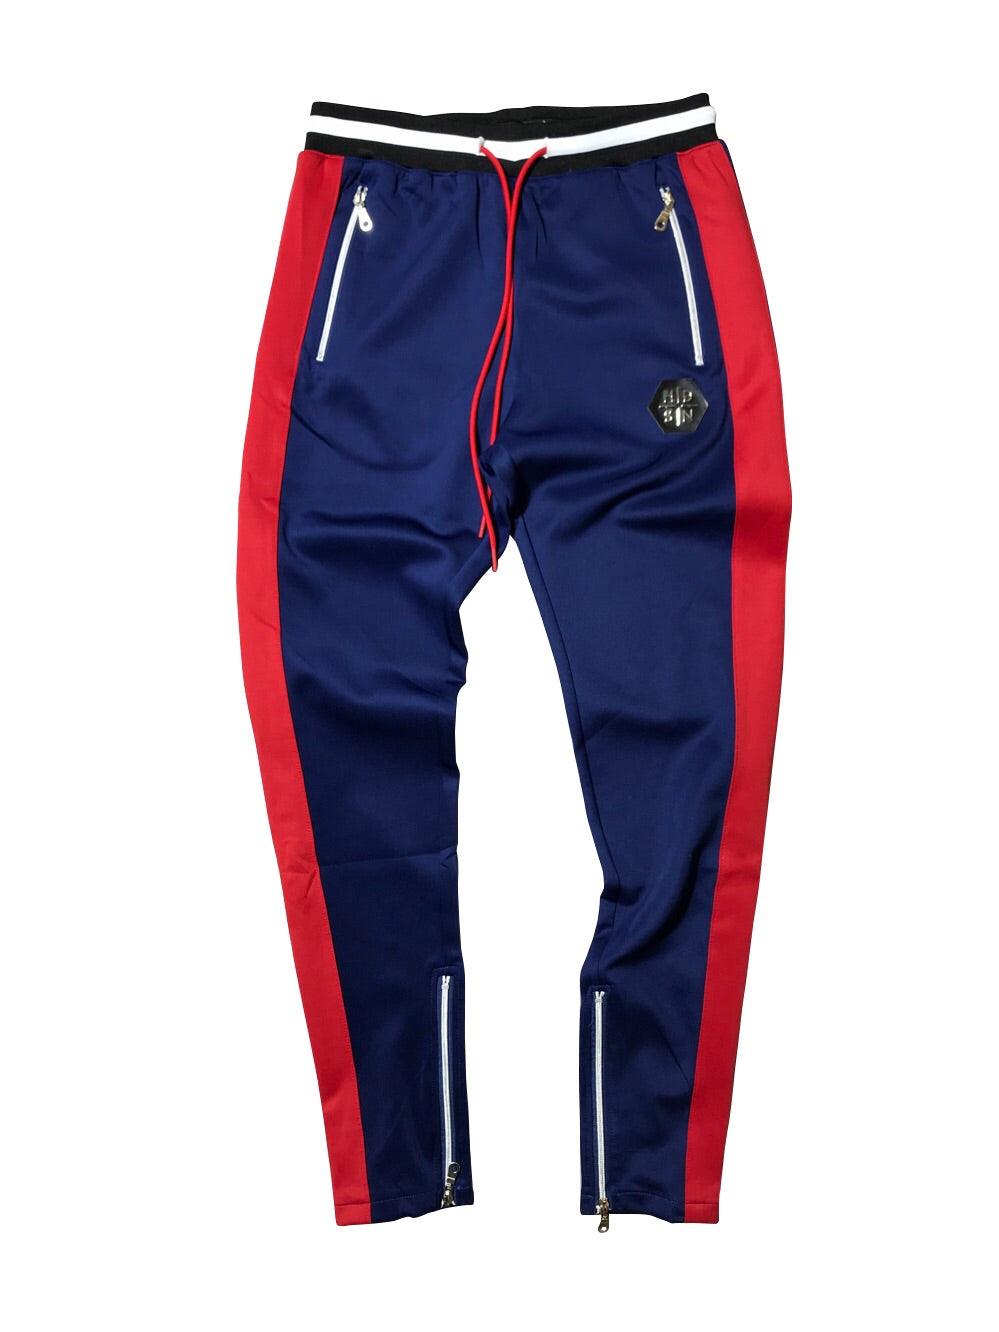 HUDSON TRACK PANTS - NAVY/RED